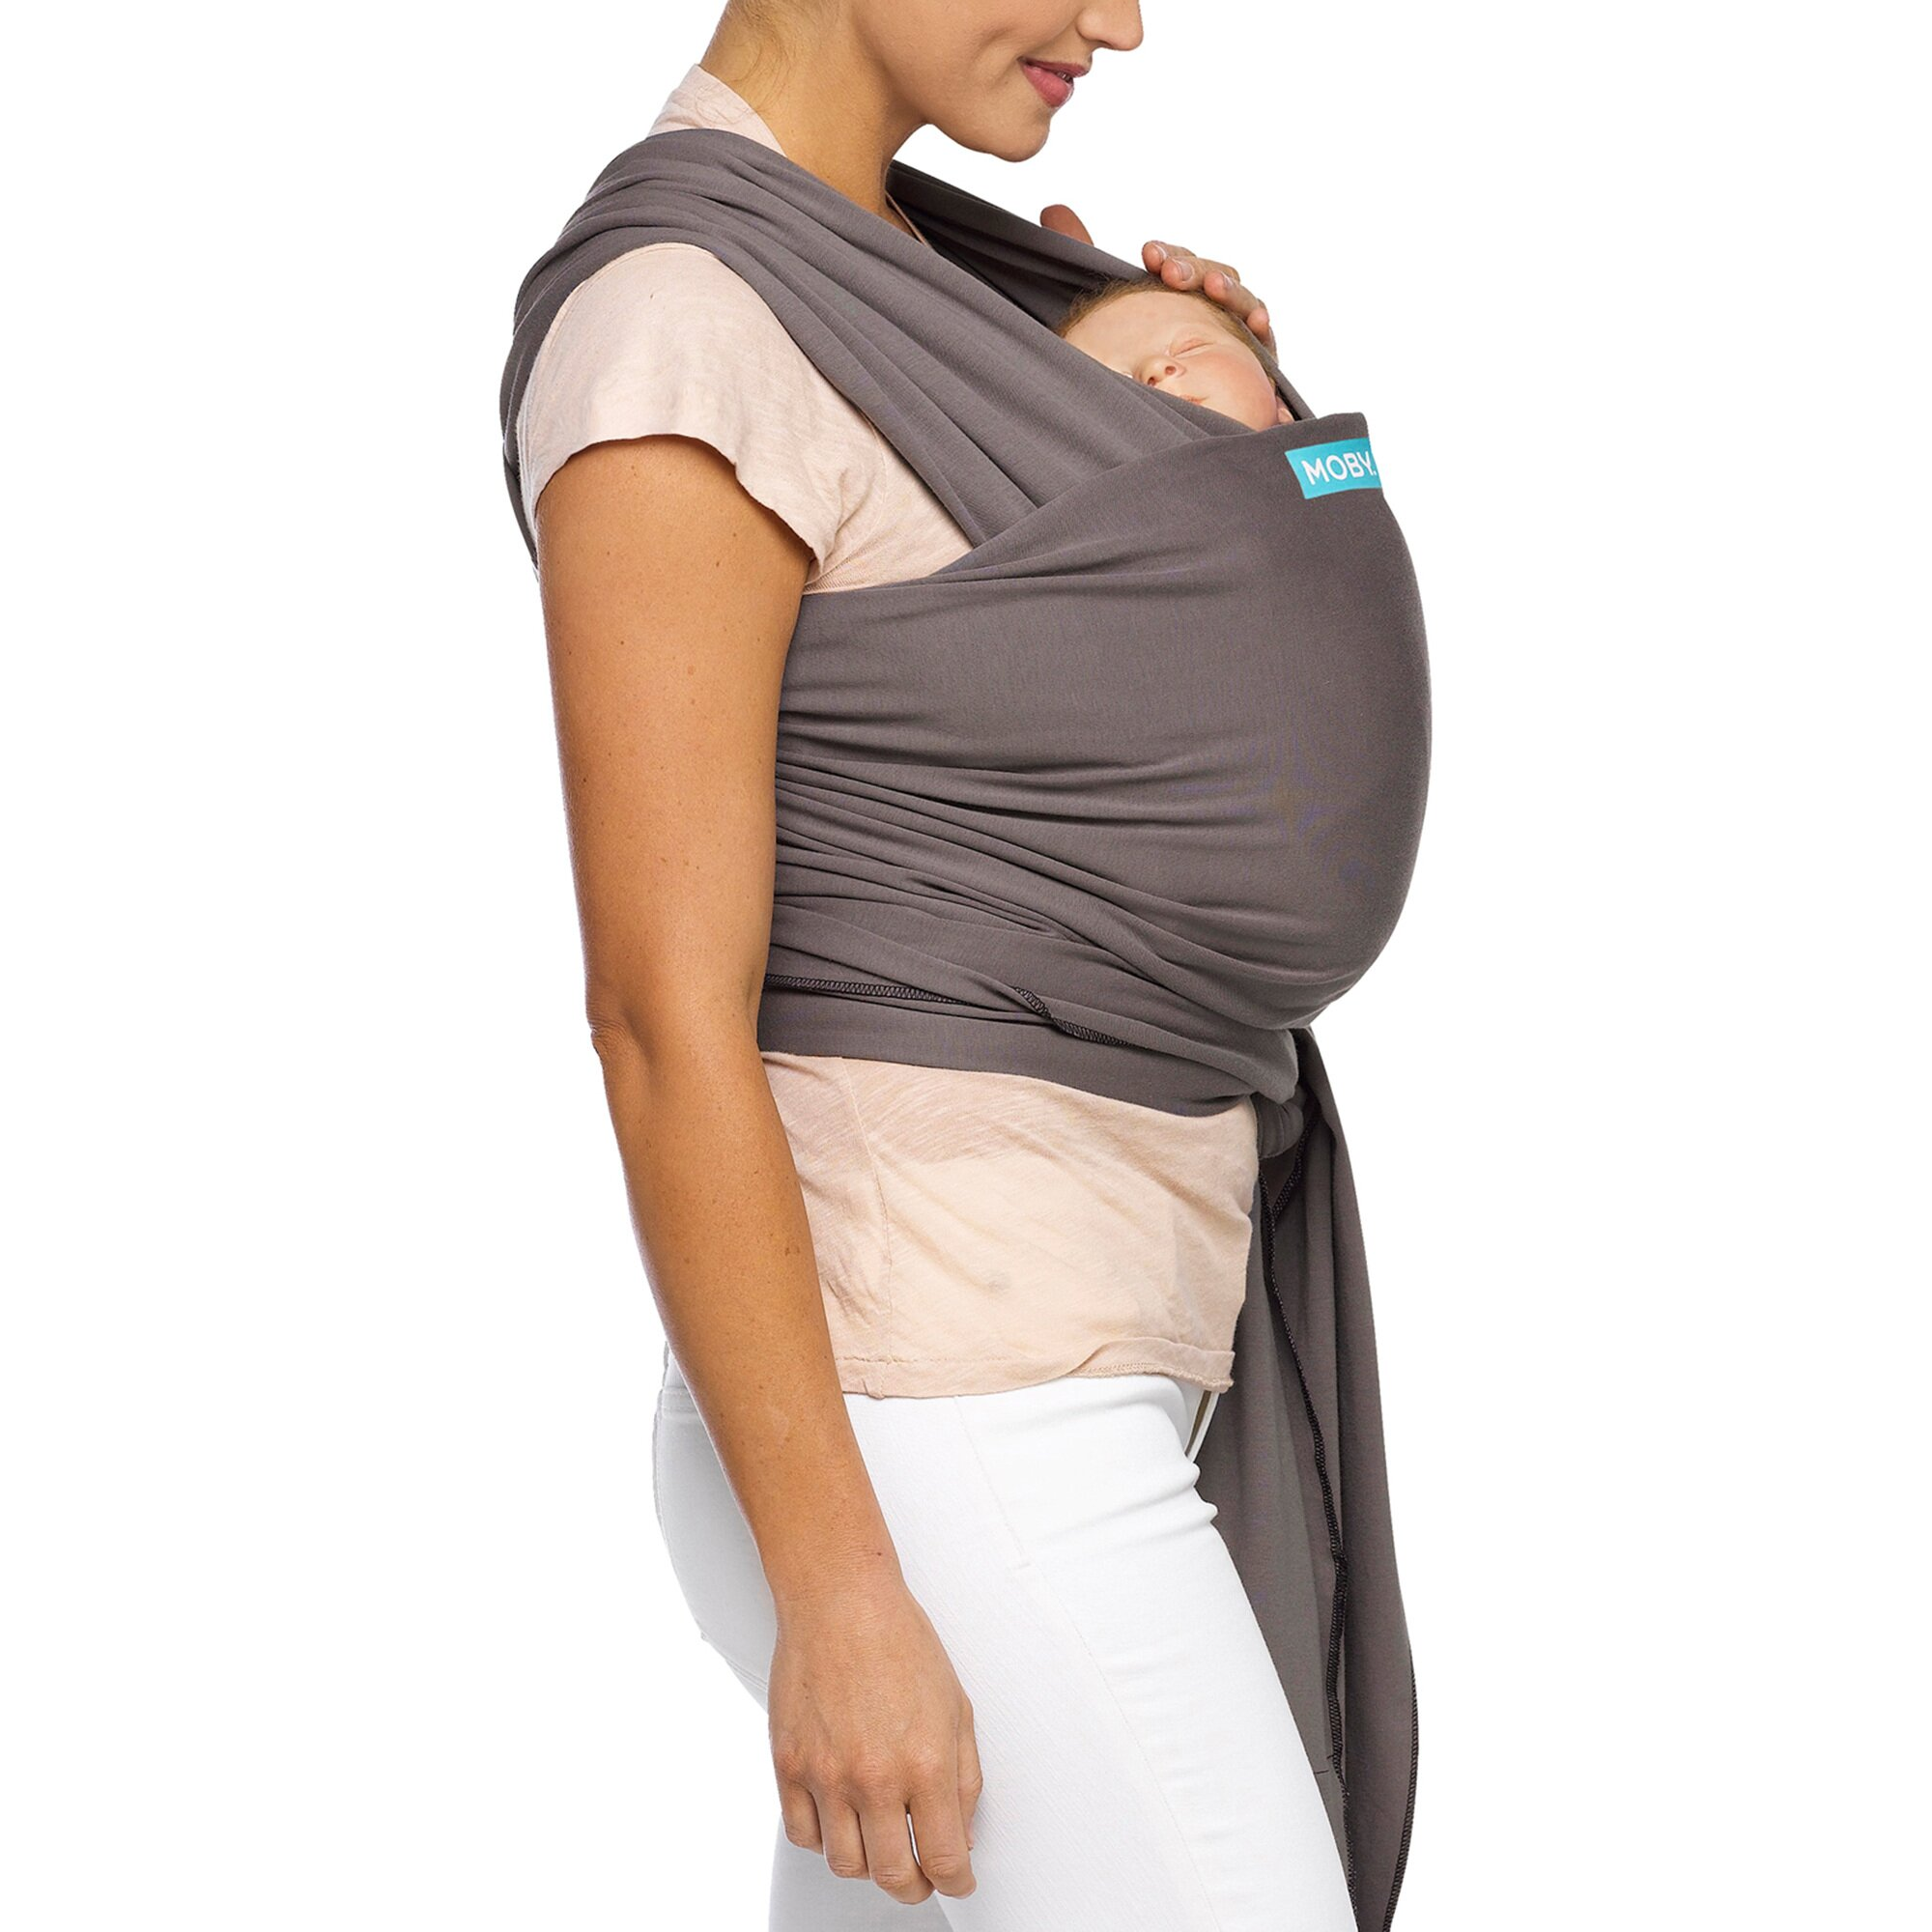 moby-wrap-babytragetuch-moby-wrap-classic-grau